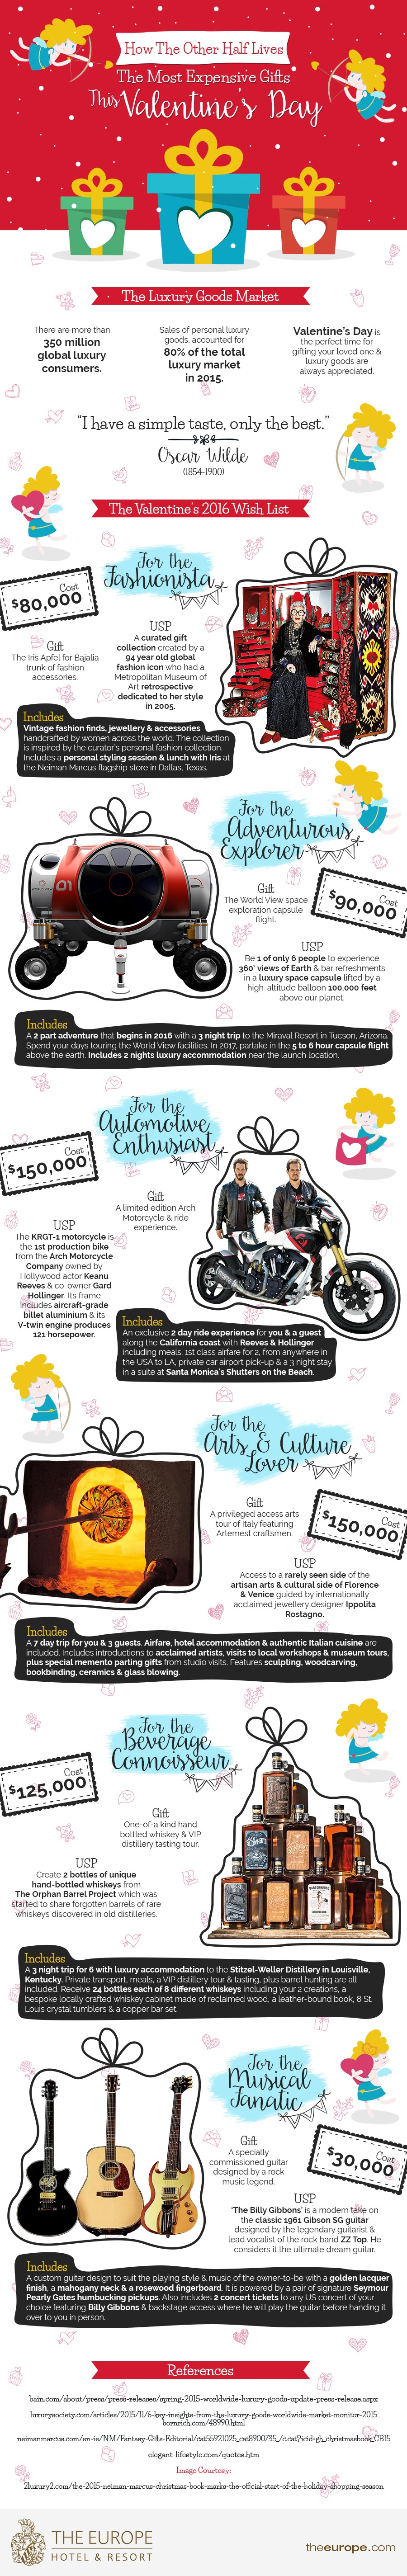 The Most Expensive Gifts This Valentine's Day-Infographic (1)